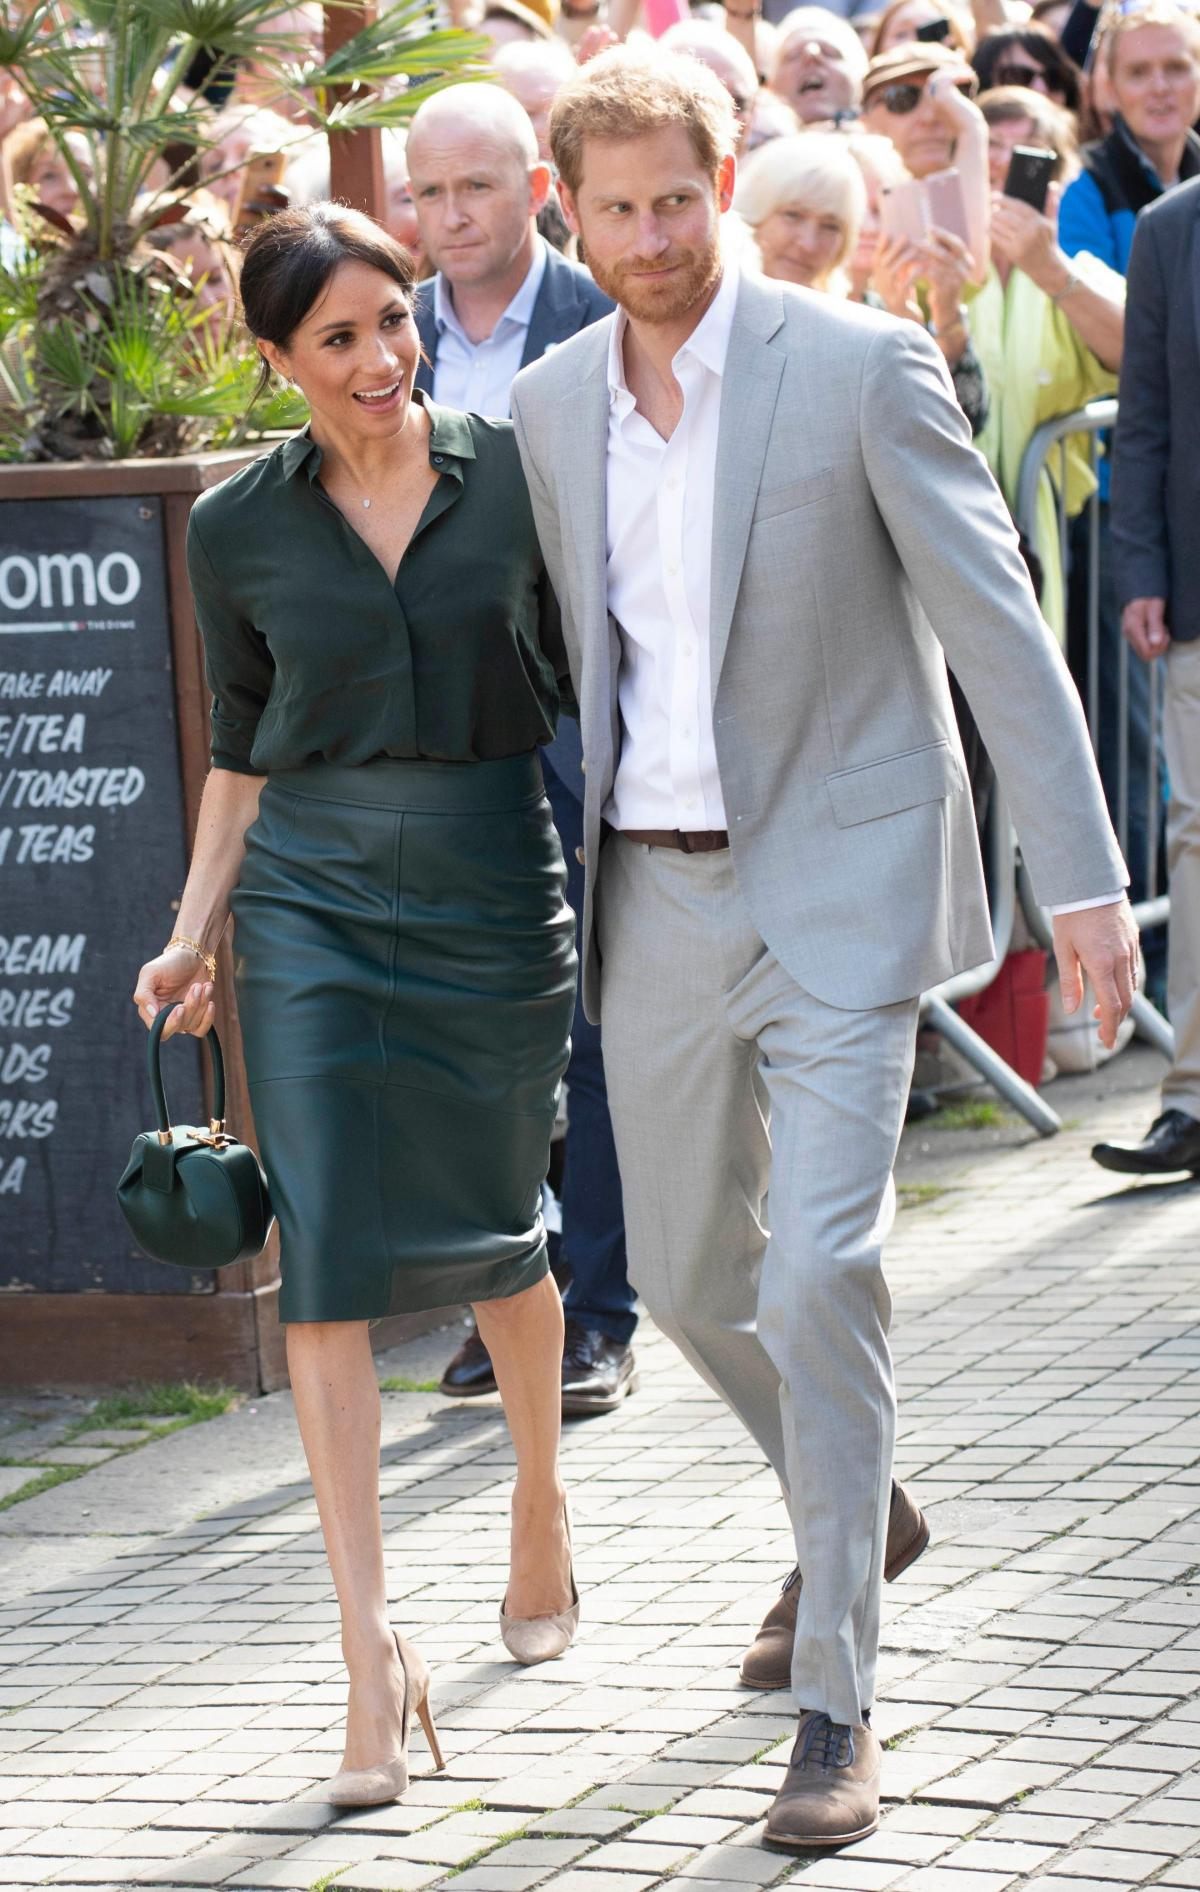 royal group slam petition to strip duke and duchess of sussex of titles the argus royal group slam petition to strip duke